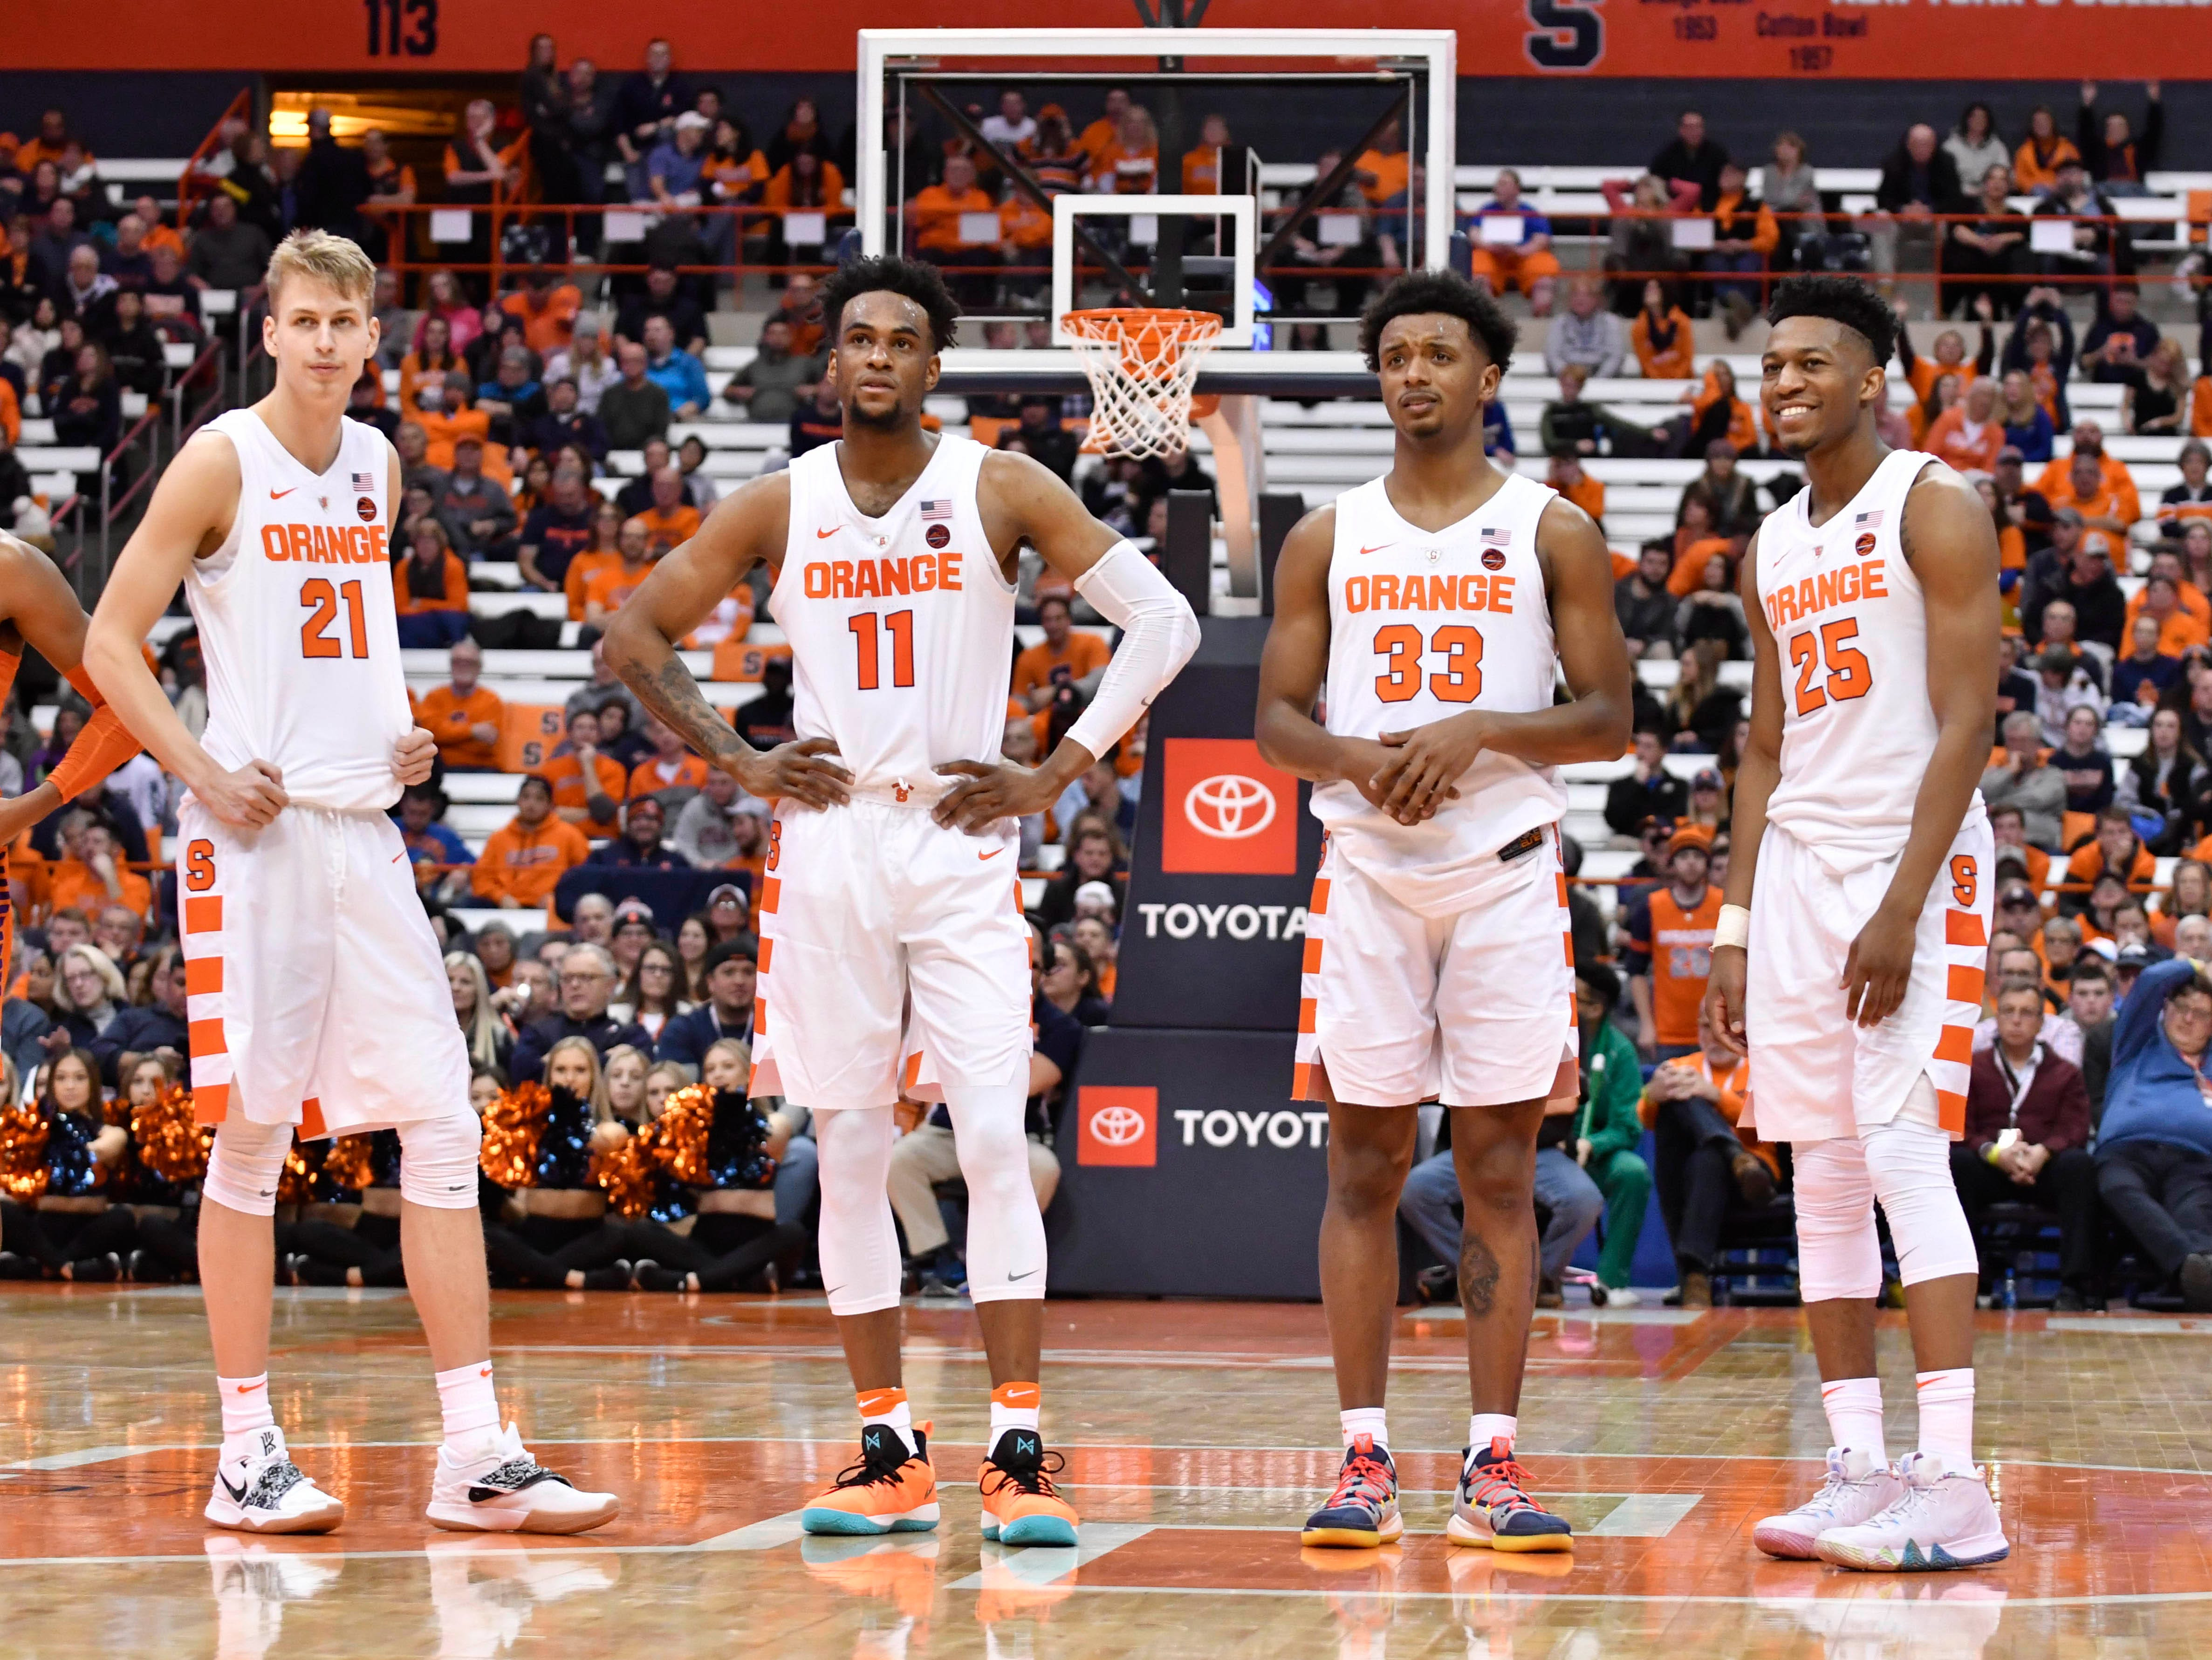 Jan 9, 2019; Syracuse, NY, USA; Four of Syracuse Orange starting team forward Marek Dolezaj (21) and forward Oshae Brissett (11) and forward Elijah Hughes (33) and guard Tyus Battle (25) watch a teammate take a free throw in the second half against the Clemson Tigers at the Carrier Dome.